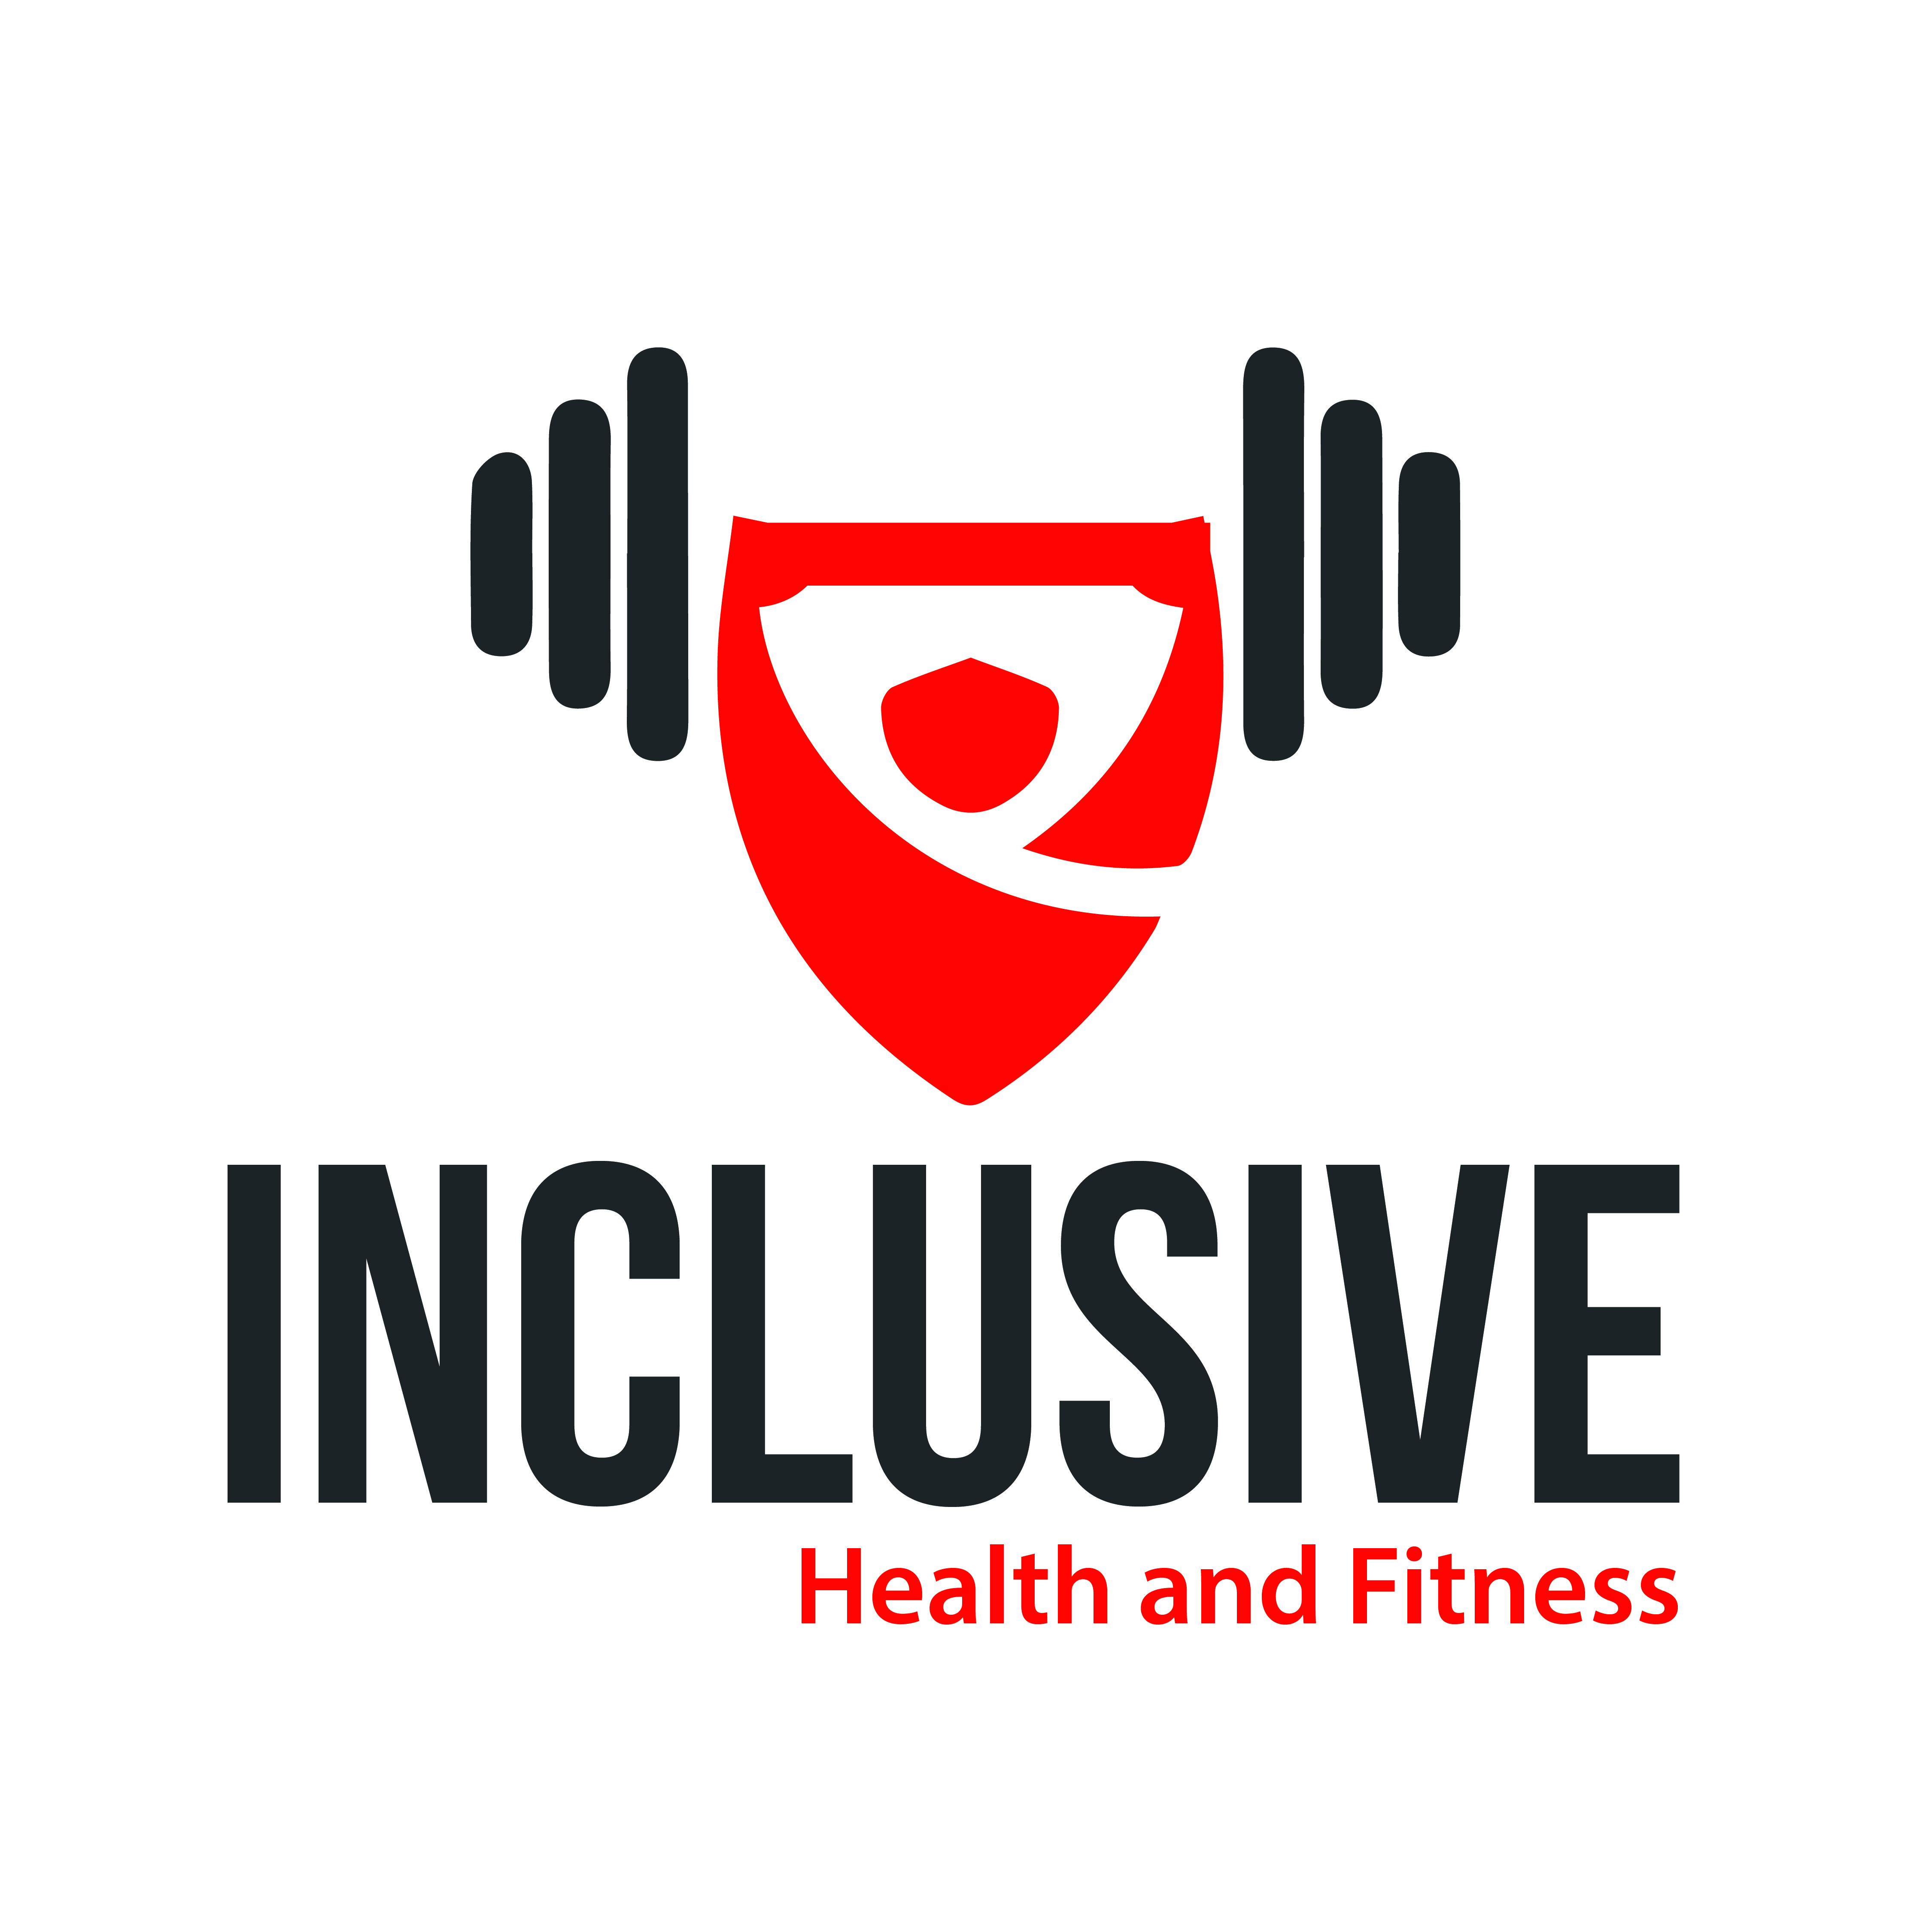 Inclusive Health and Fitness